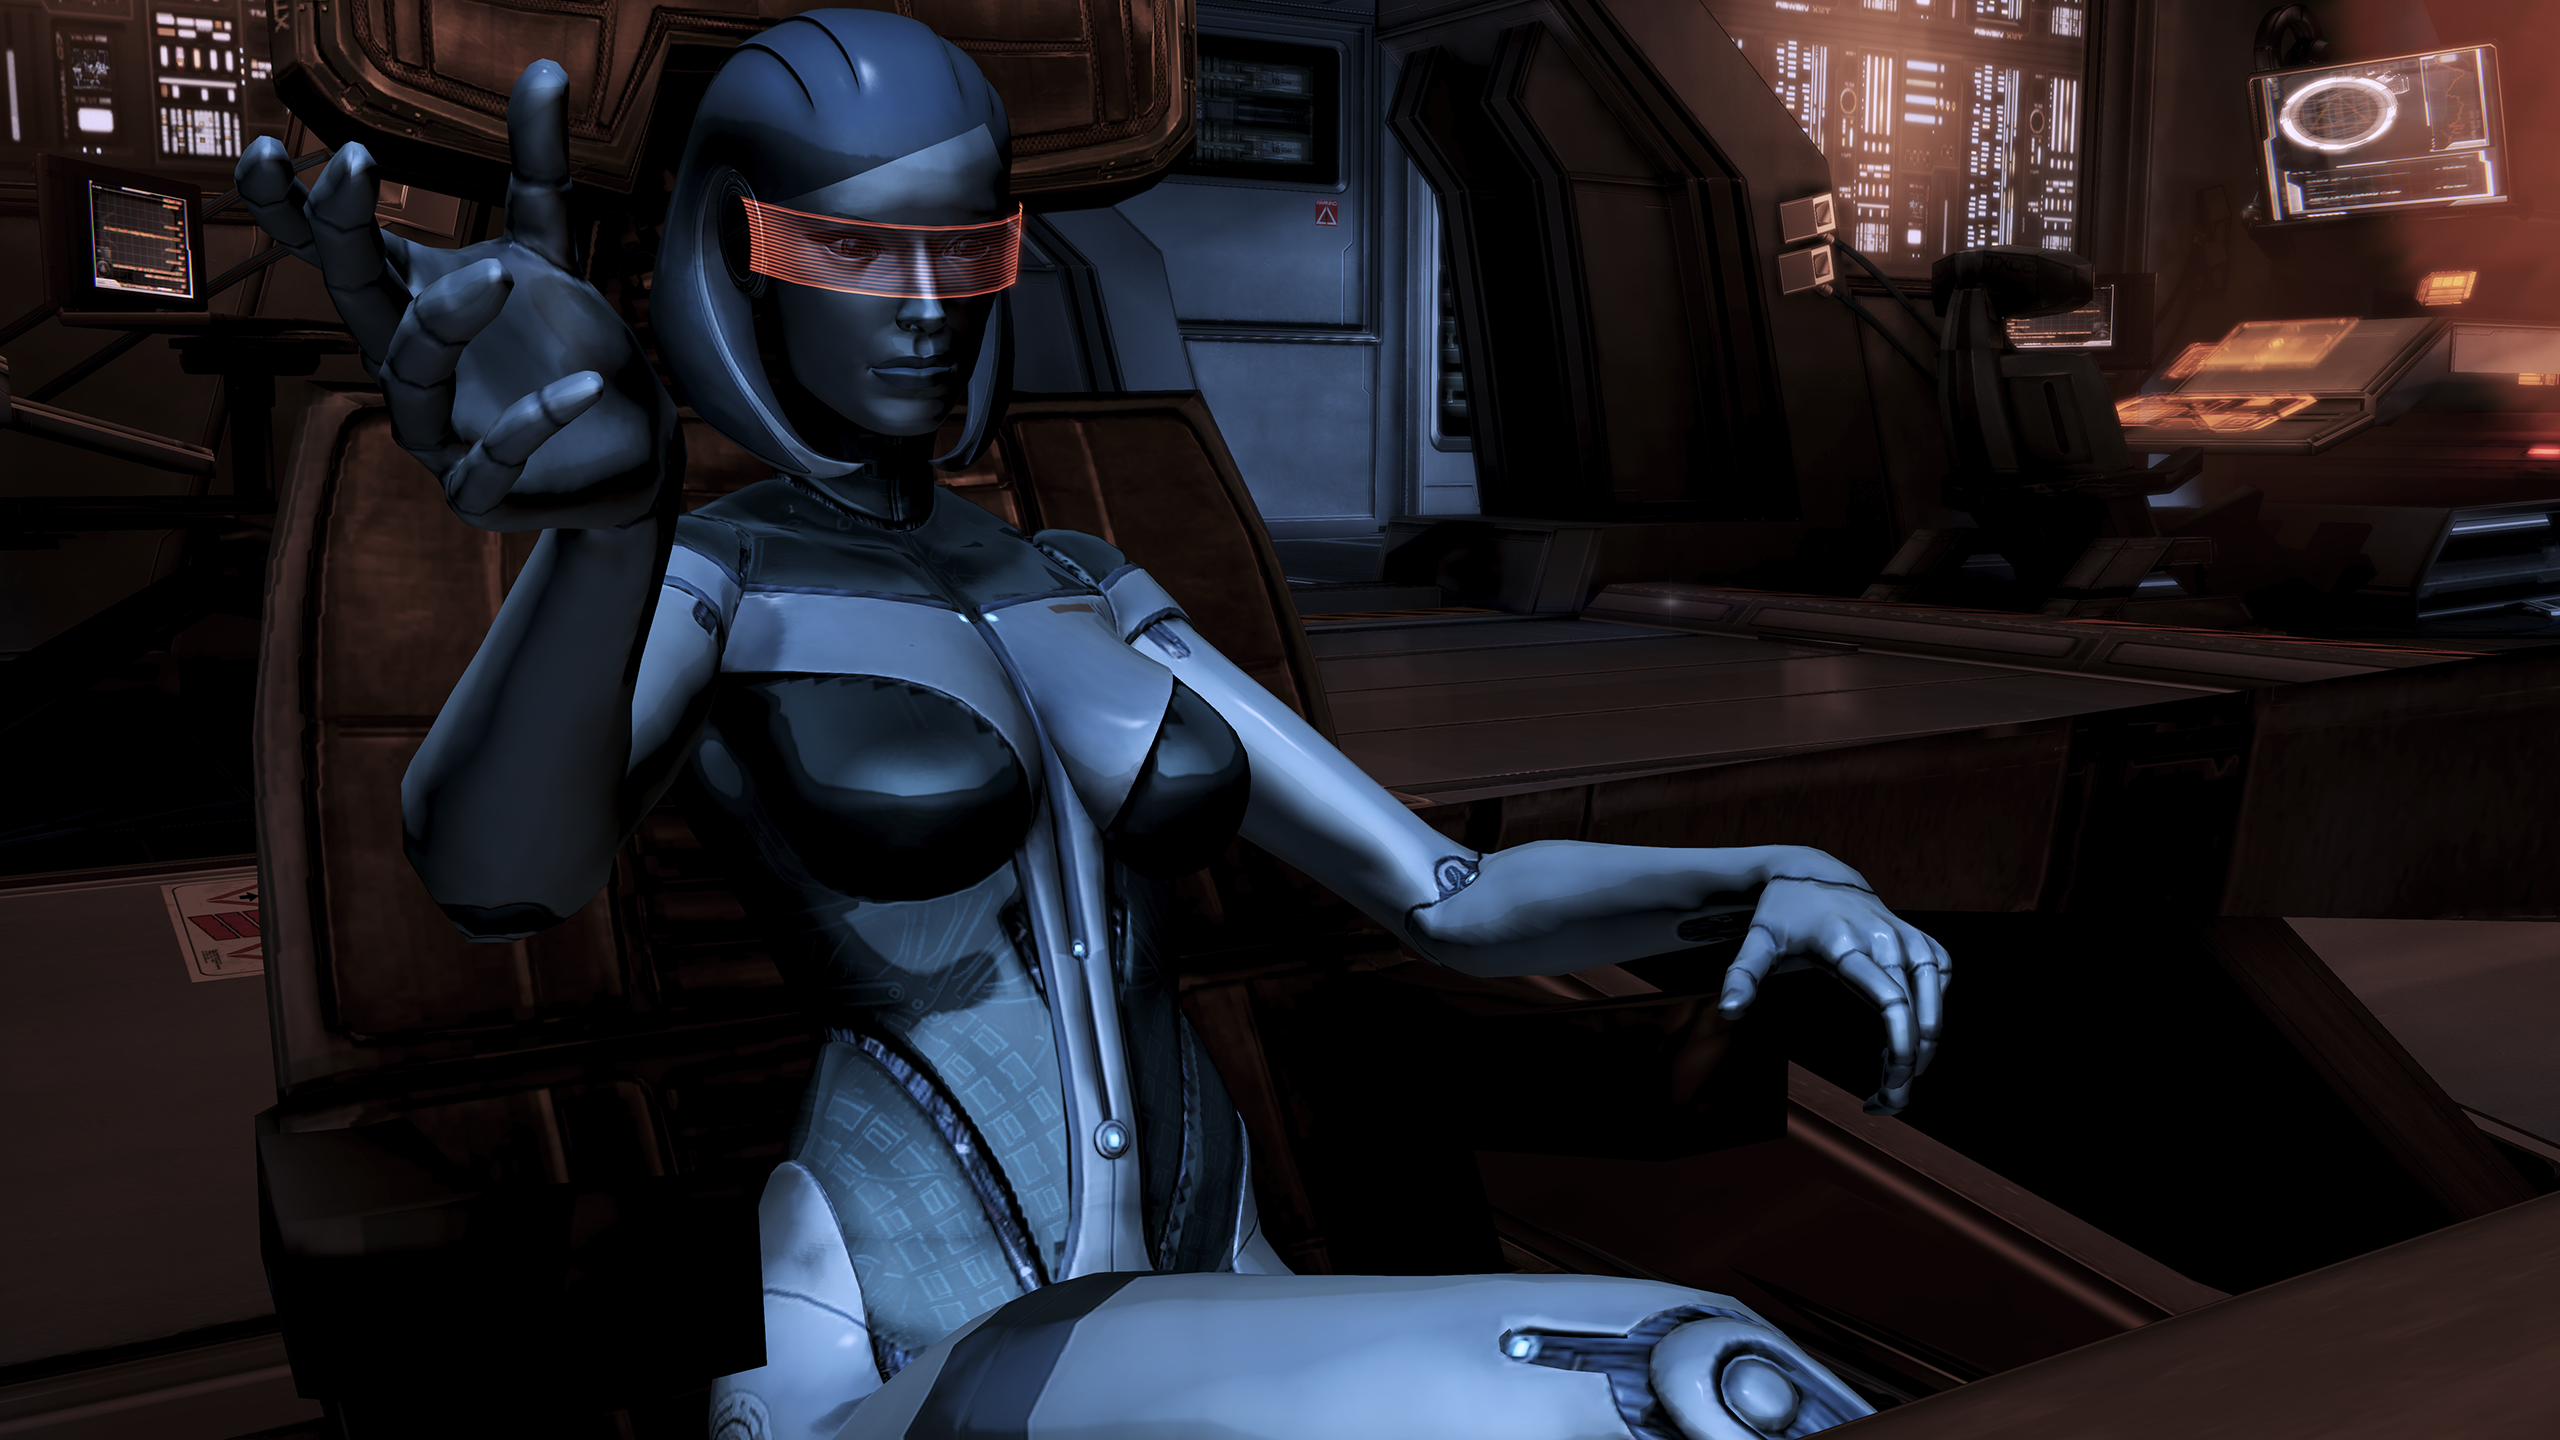 Mass effect sex scene video debate news